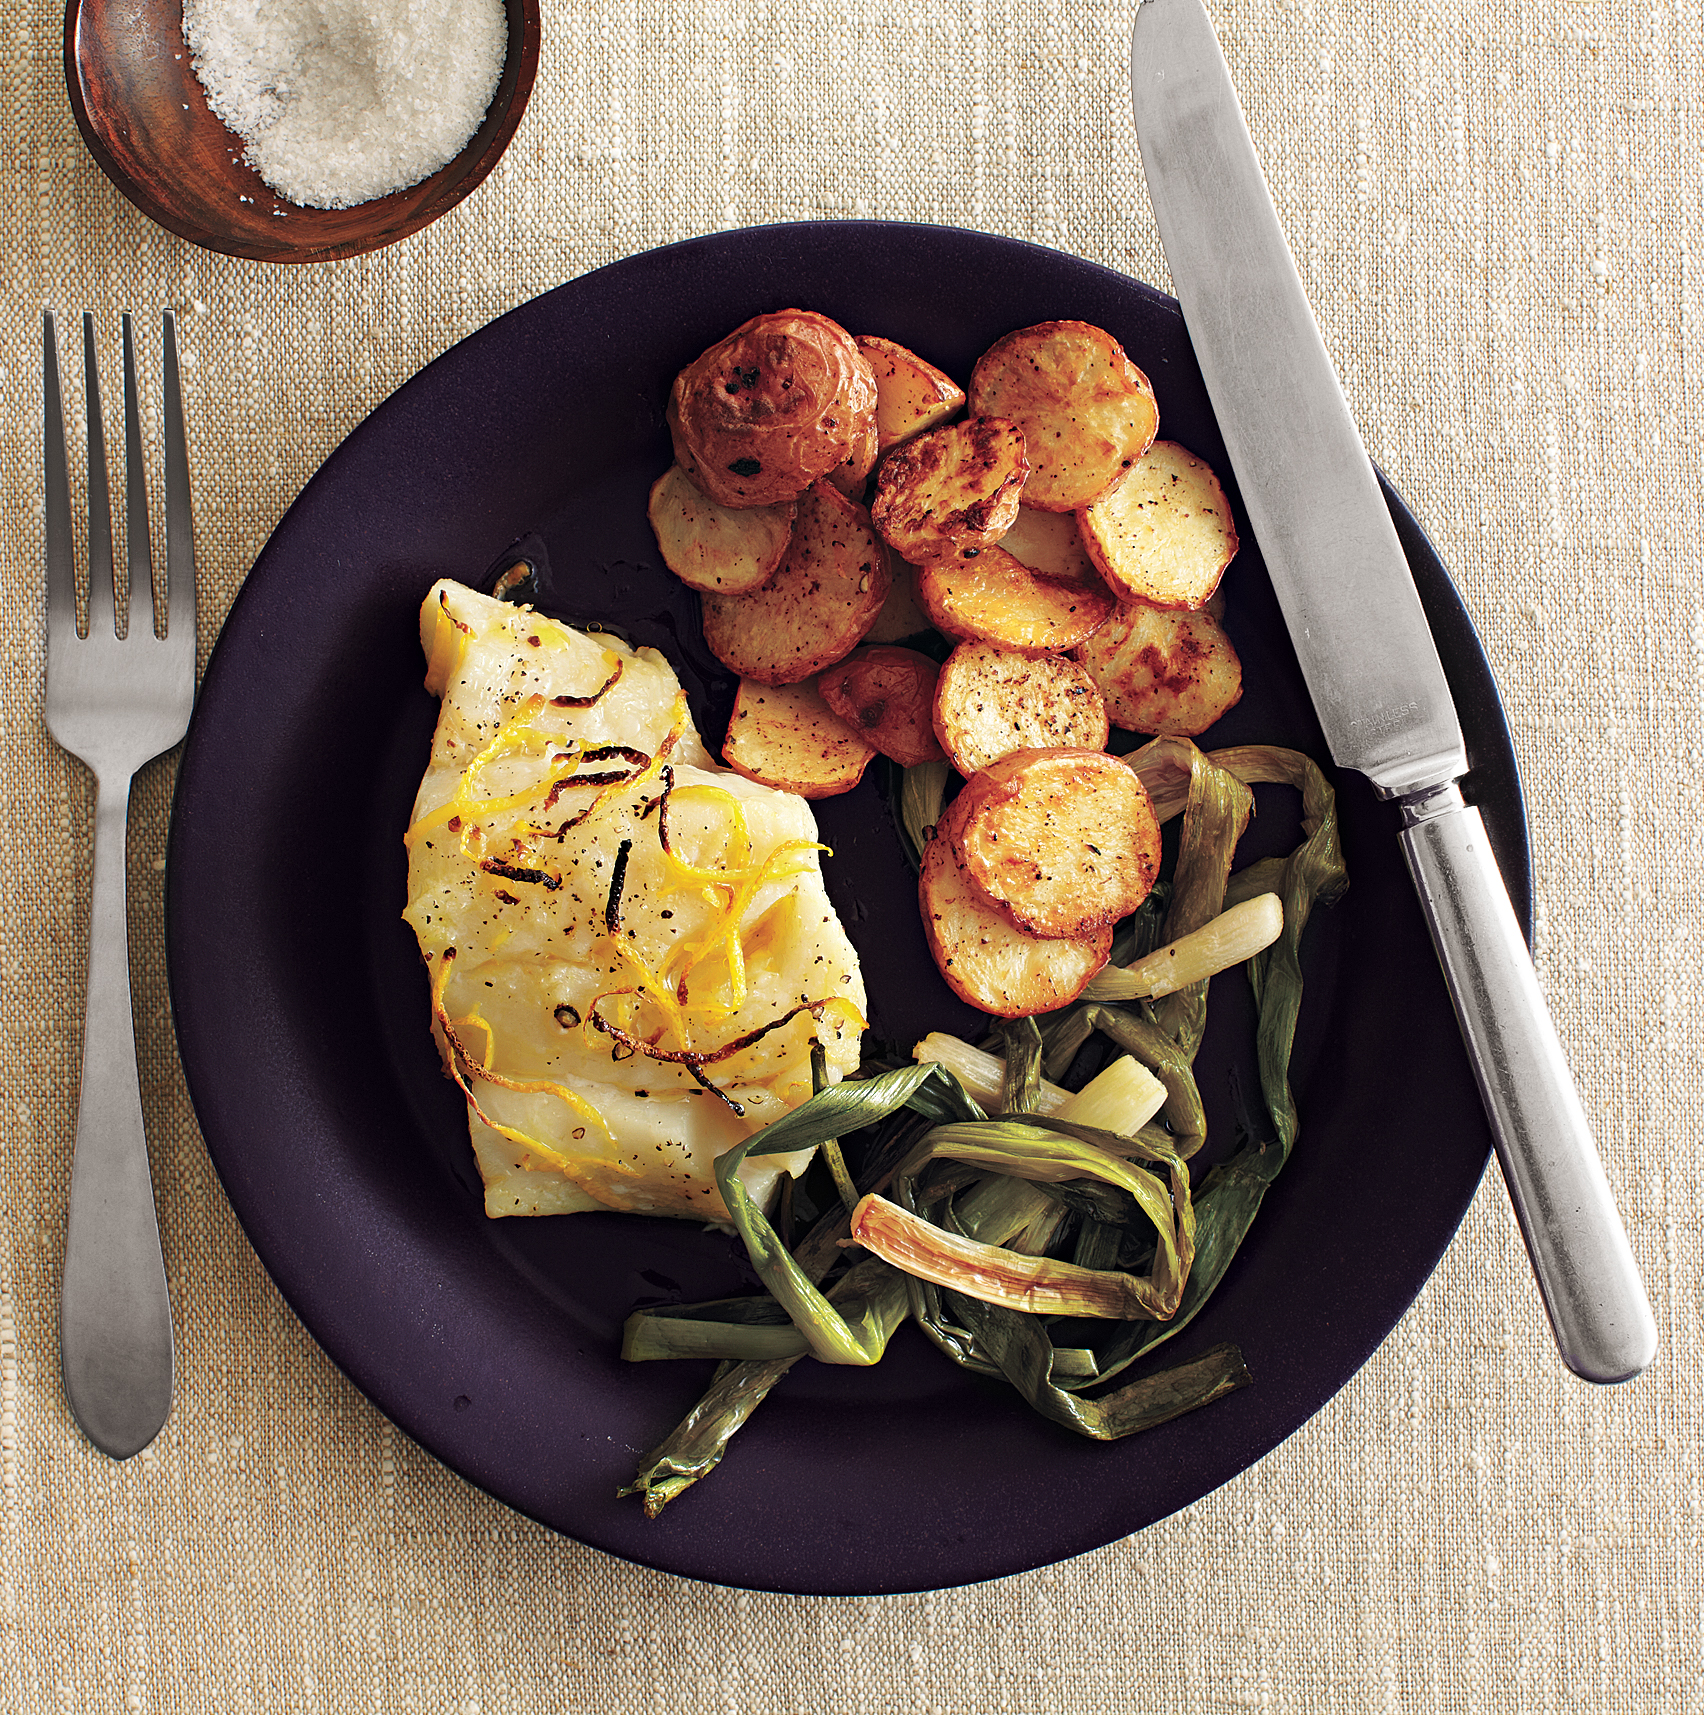 Clone of Roasted Cod and Scallions with Spiced Potatoes (Roasting Recipes)